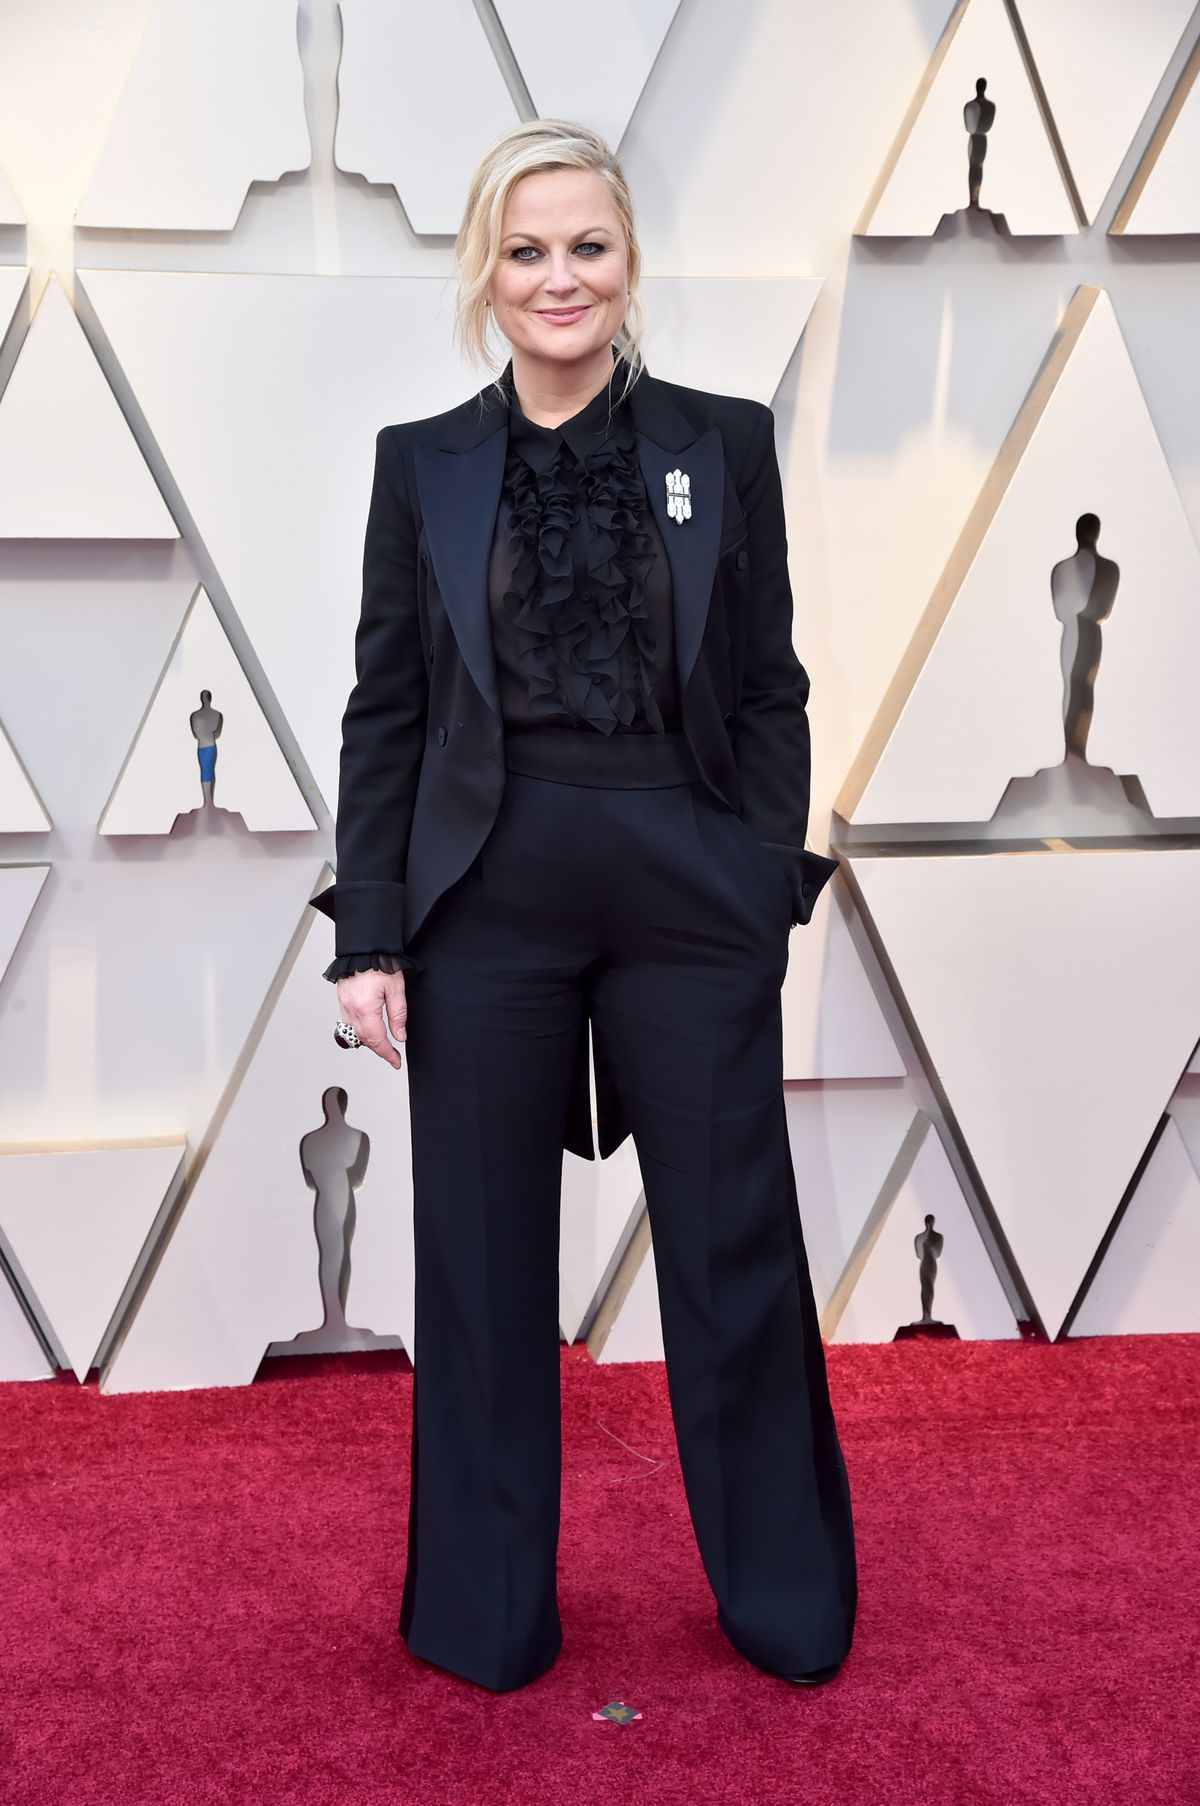 Oscars 2019 Best Dressed Celebrity Fashion On The Red